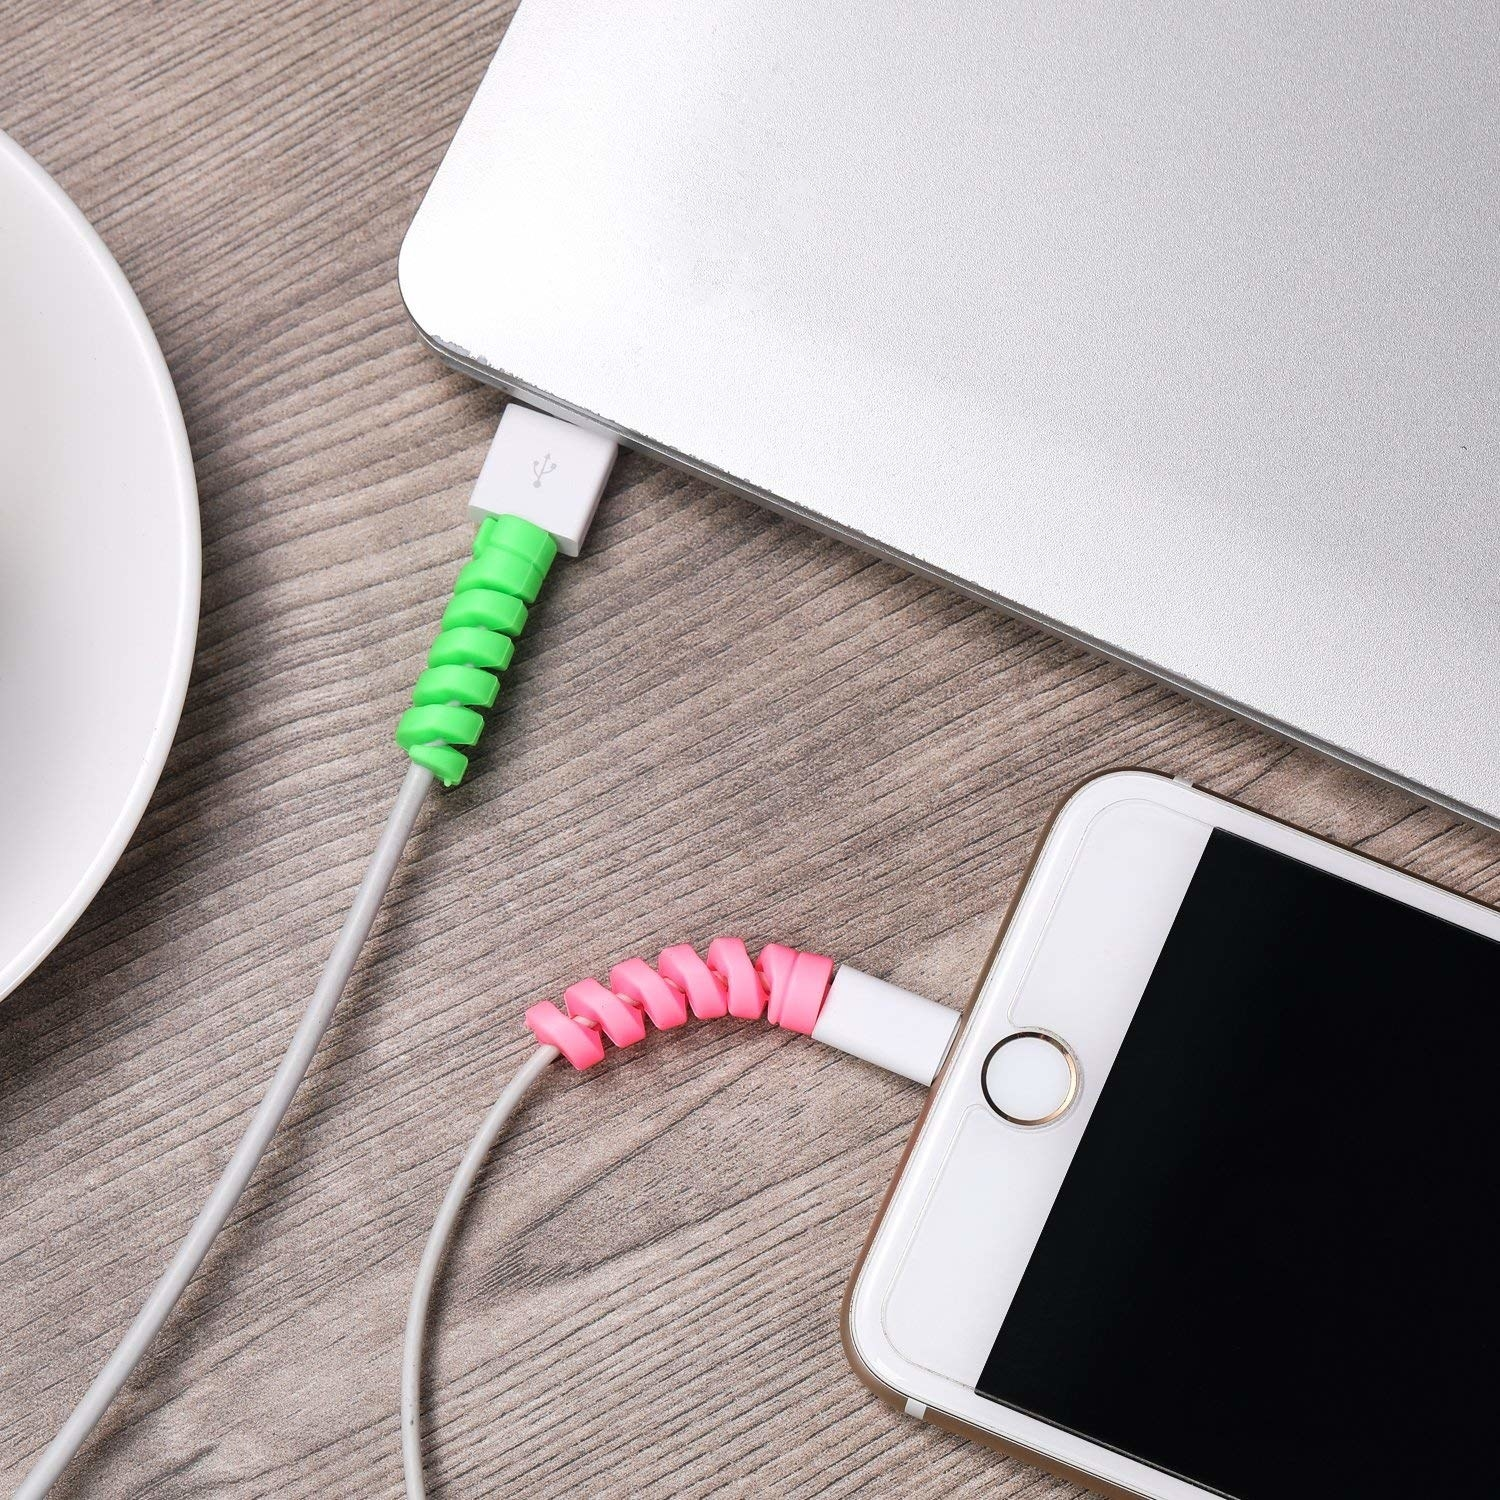 A green charger protector on a cord and a pink on a phone